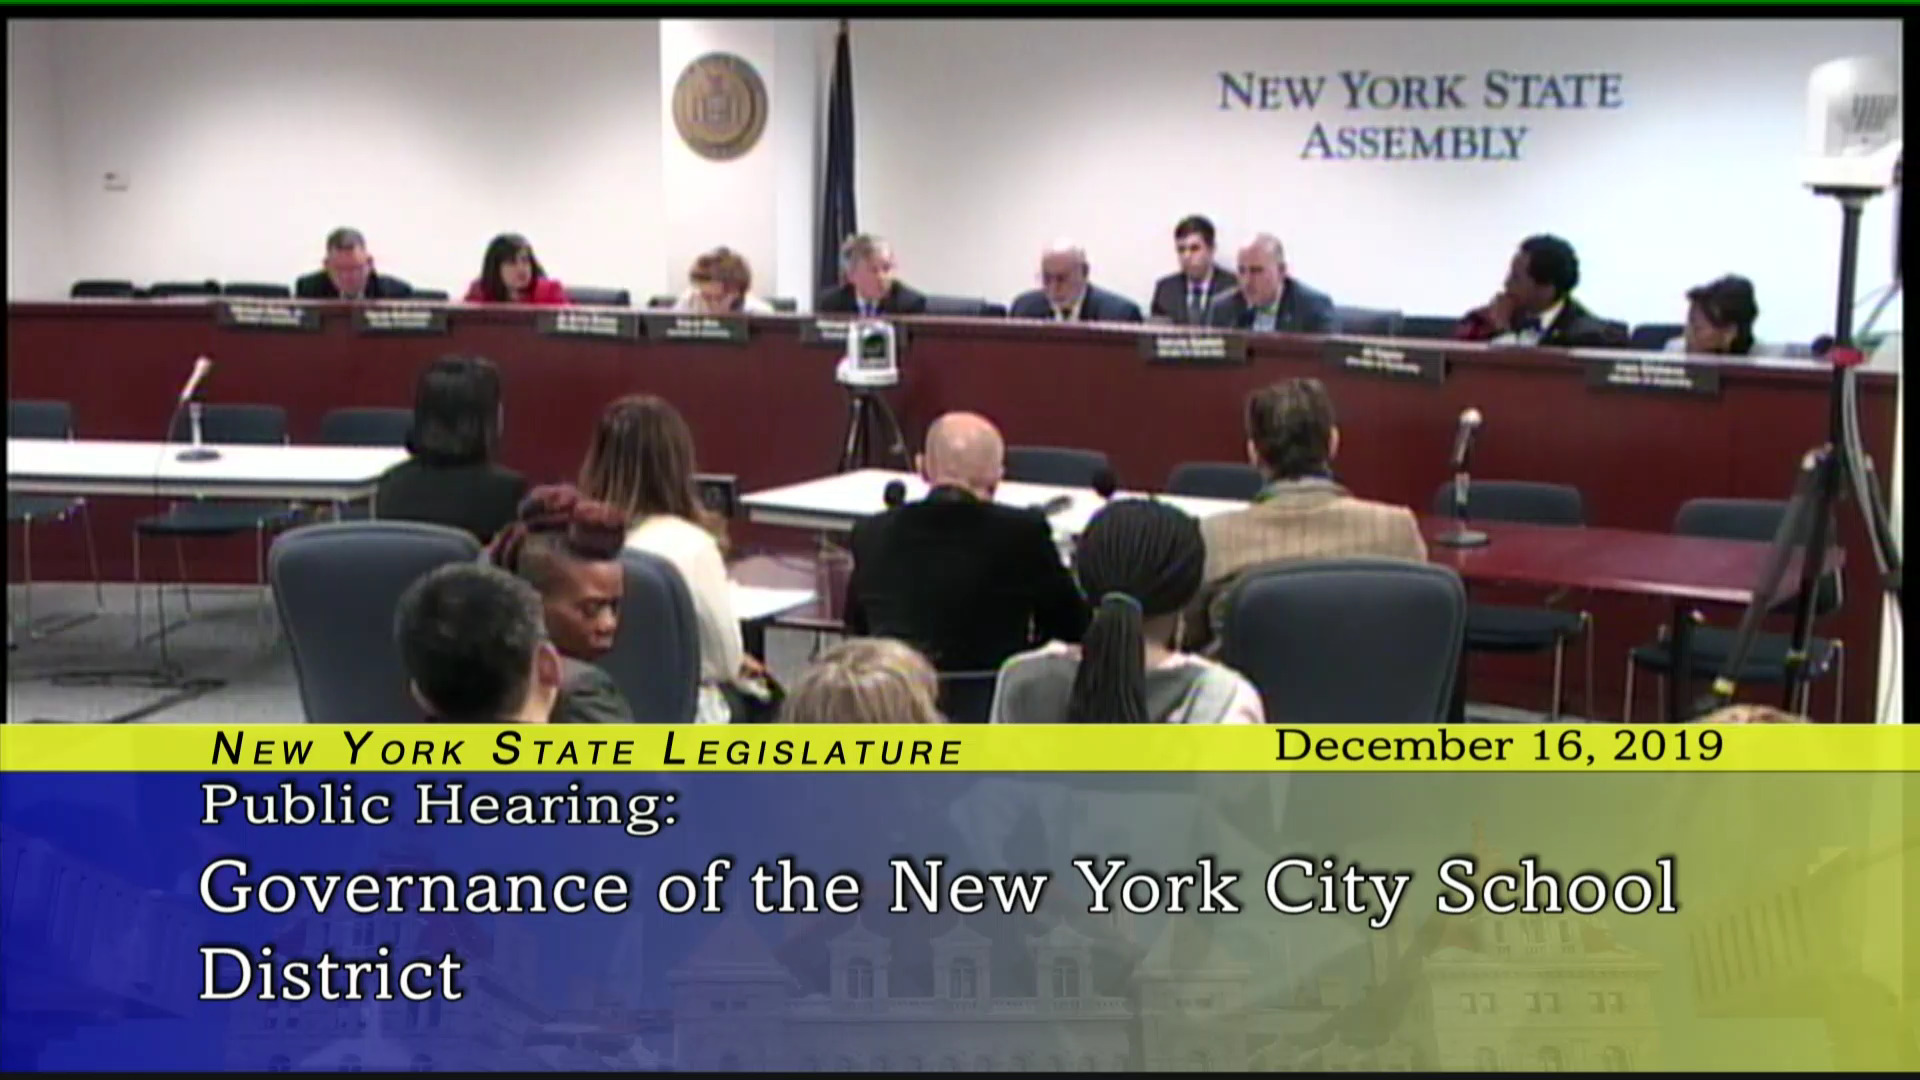 Public Hearing On Governance of the New York City School District (1)